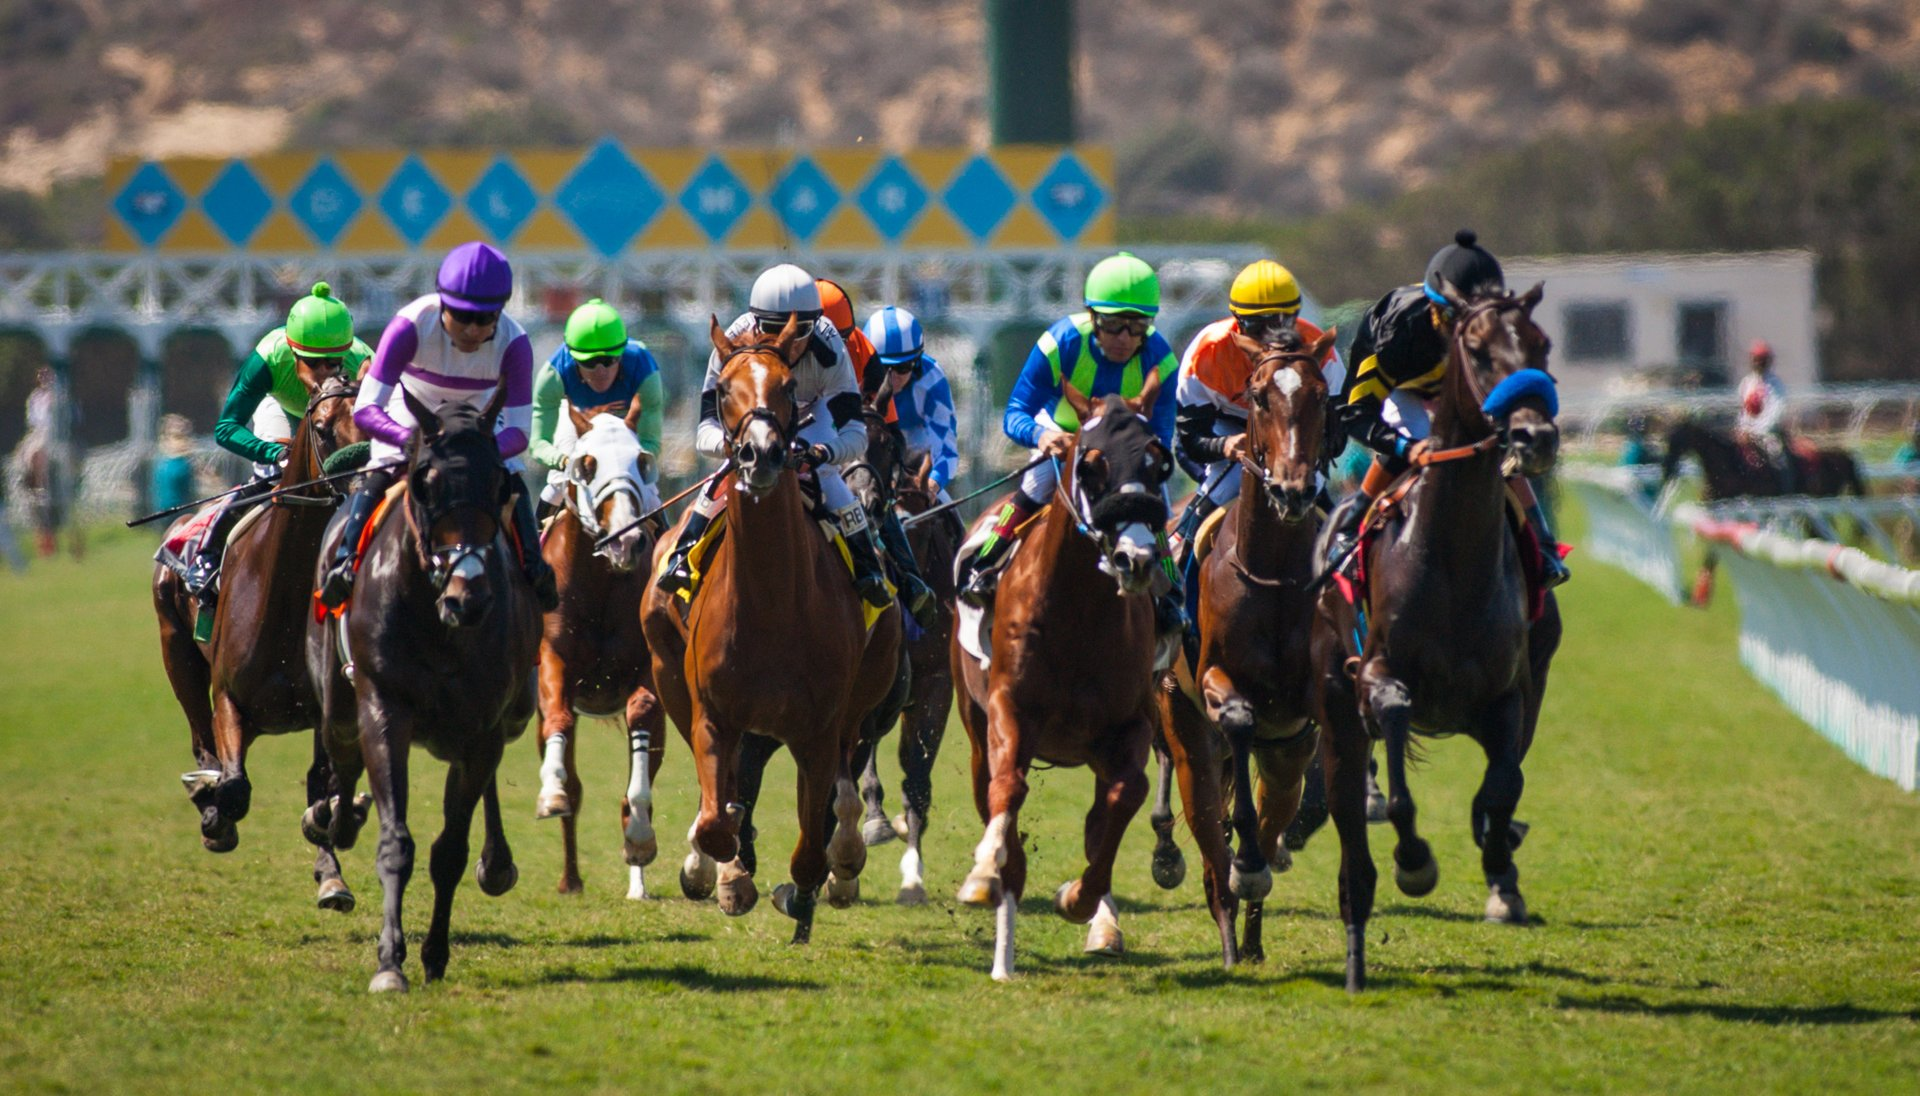 Del Mar Racing Season in San Diego 2019 - Best Time